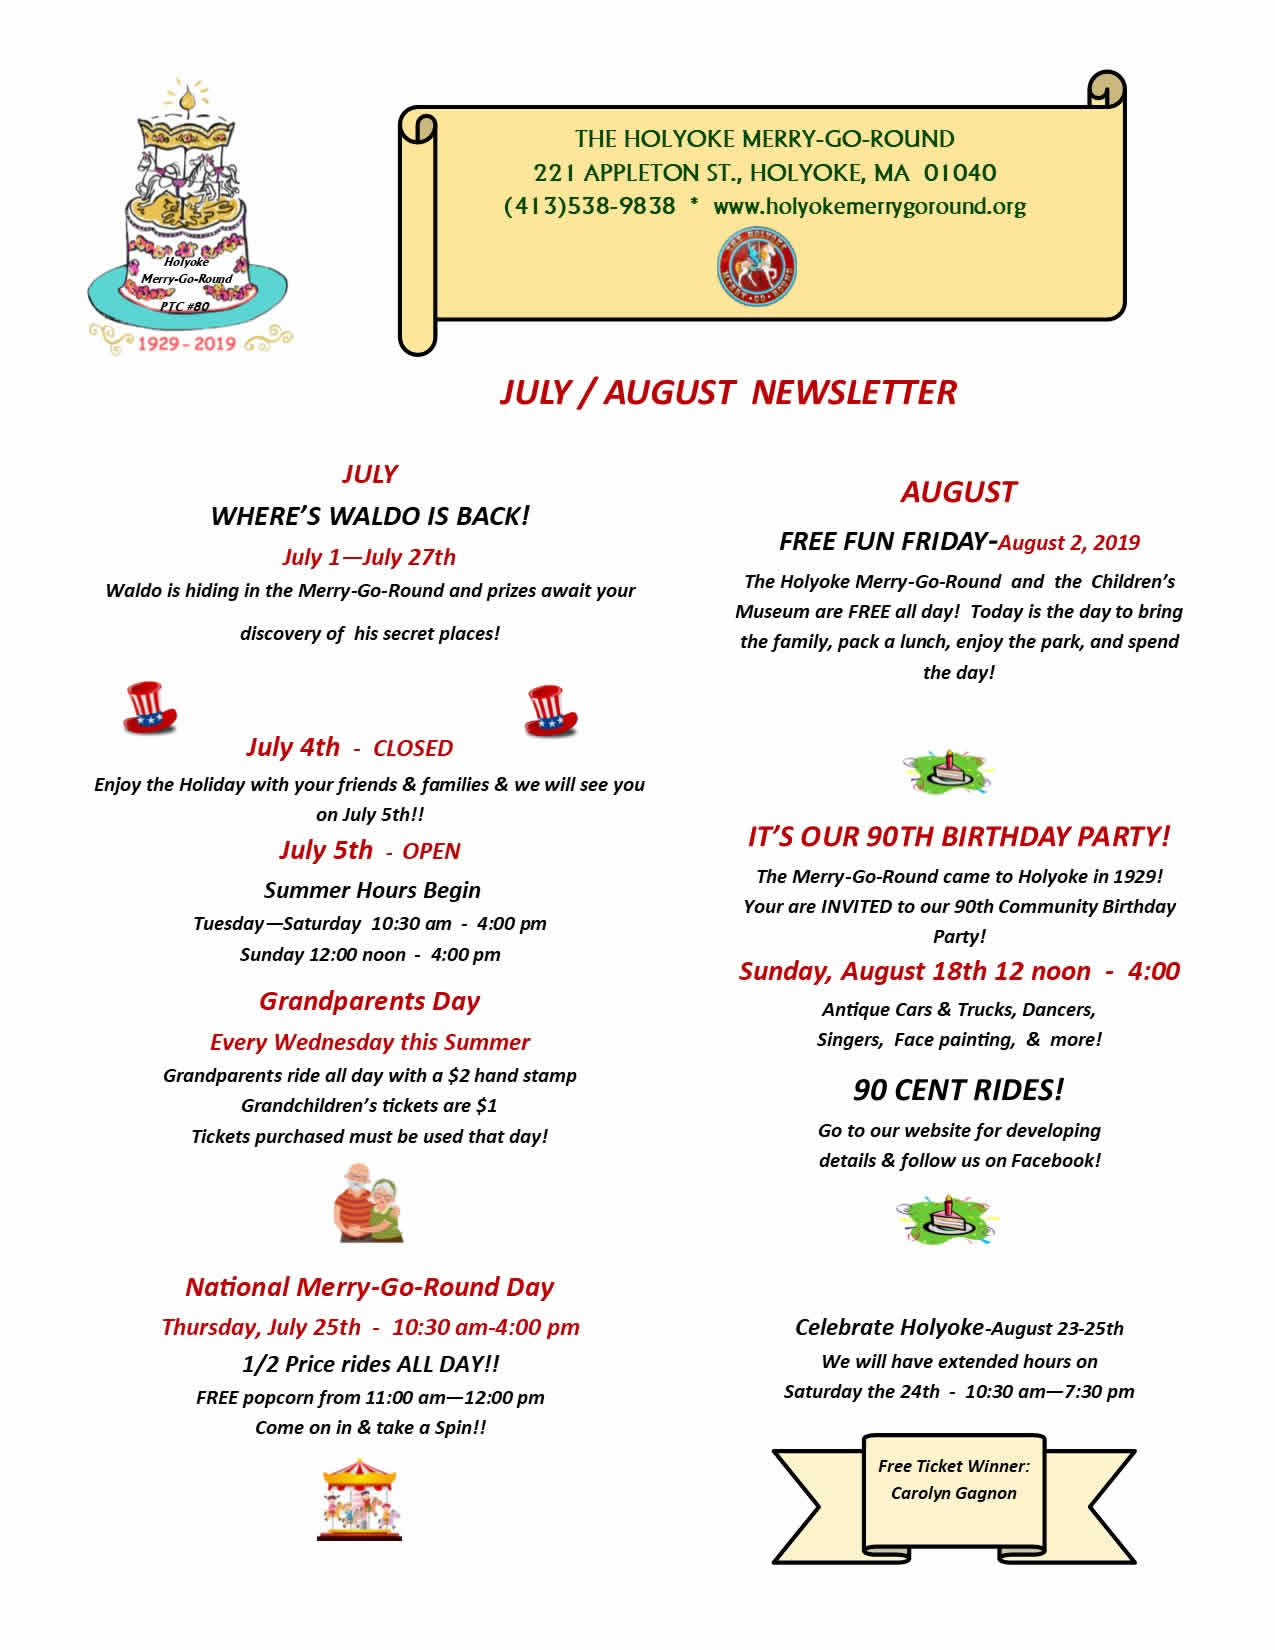 Holyoke Merry-Go-Round July & August Newsletter